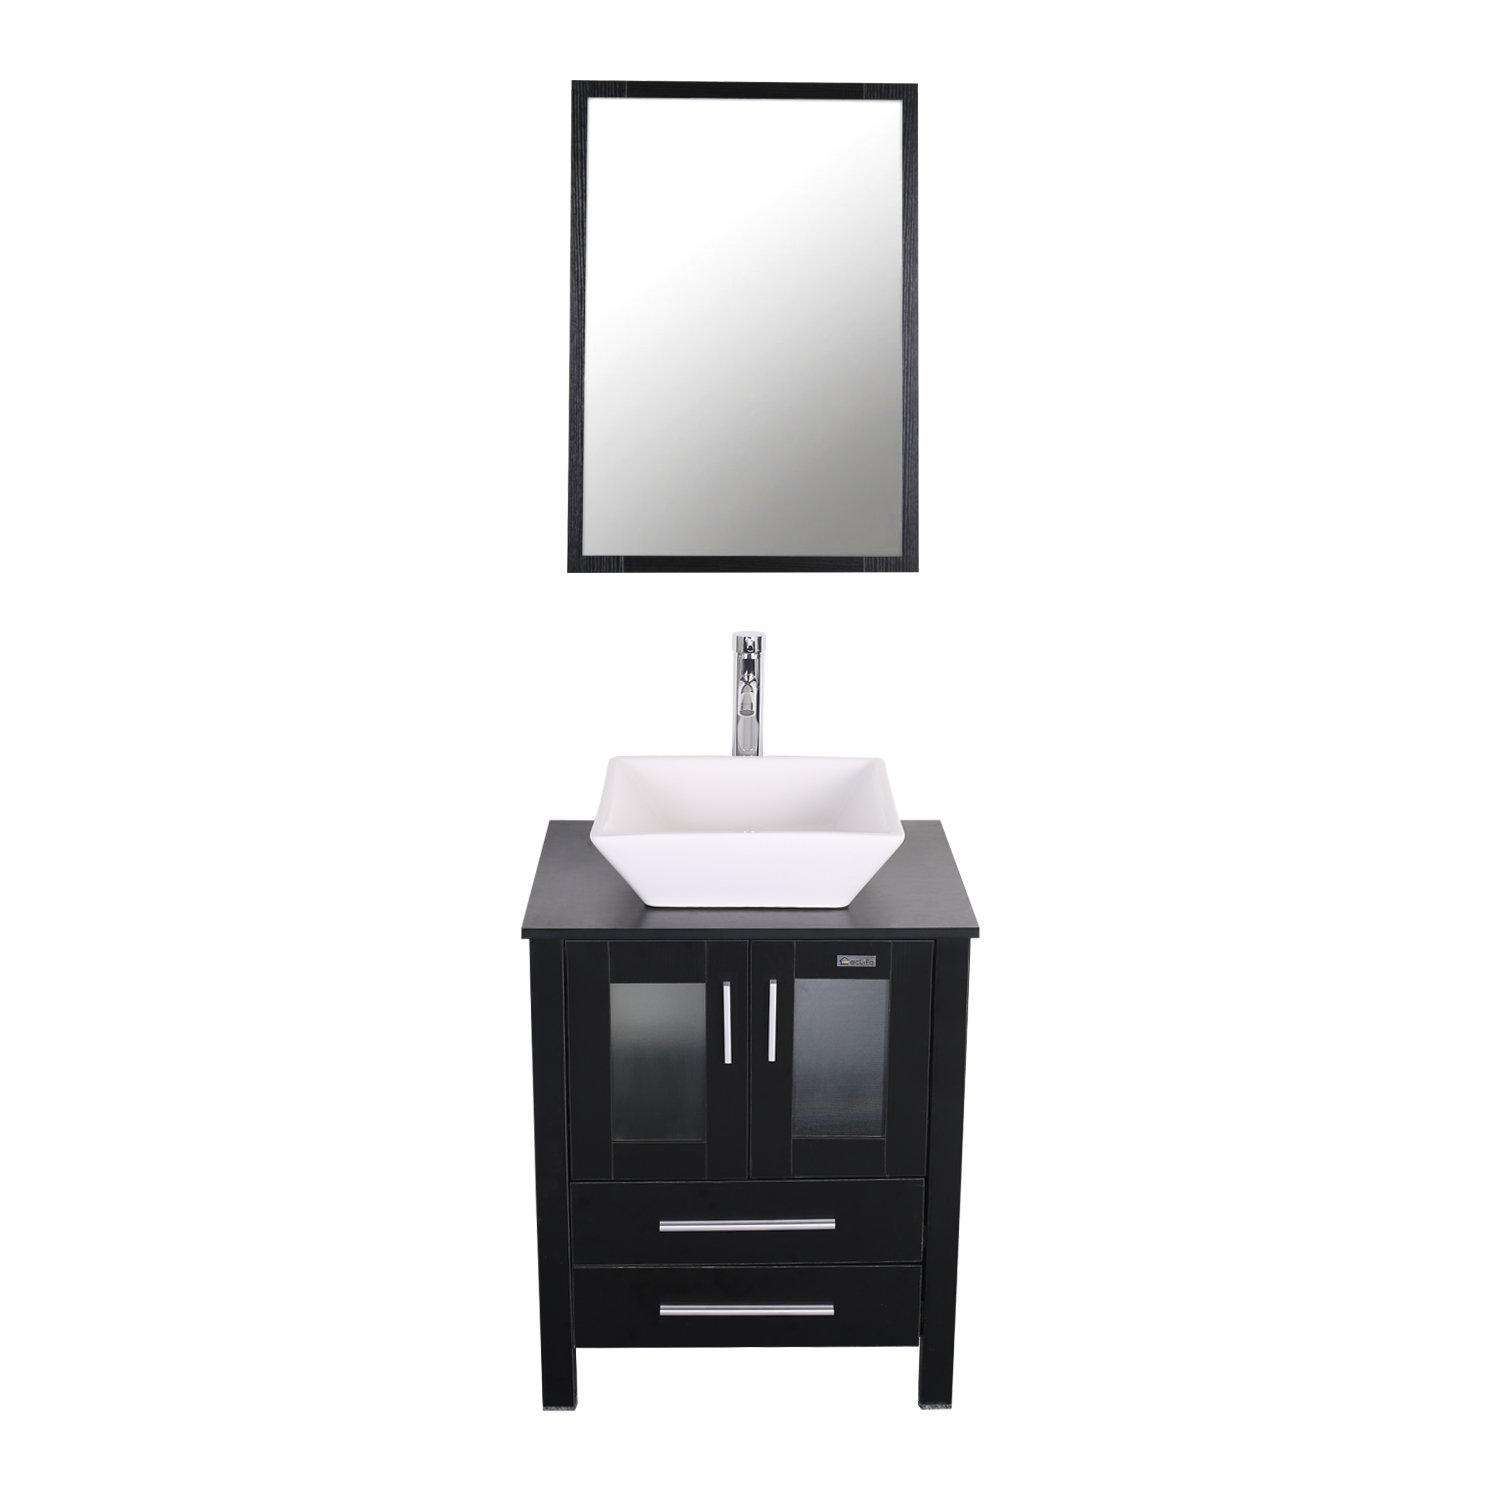 Eclife 24 inch Modern Bathroom Vanity Units Cabinet And Sink Stand